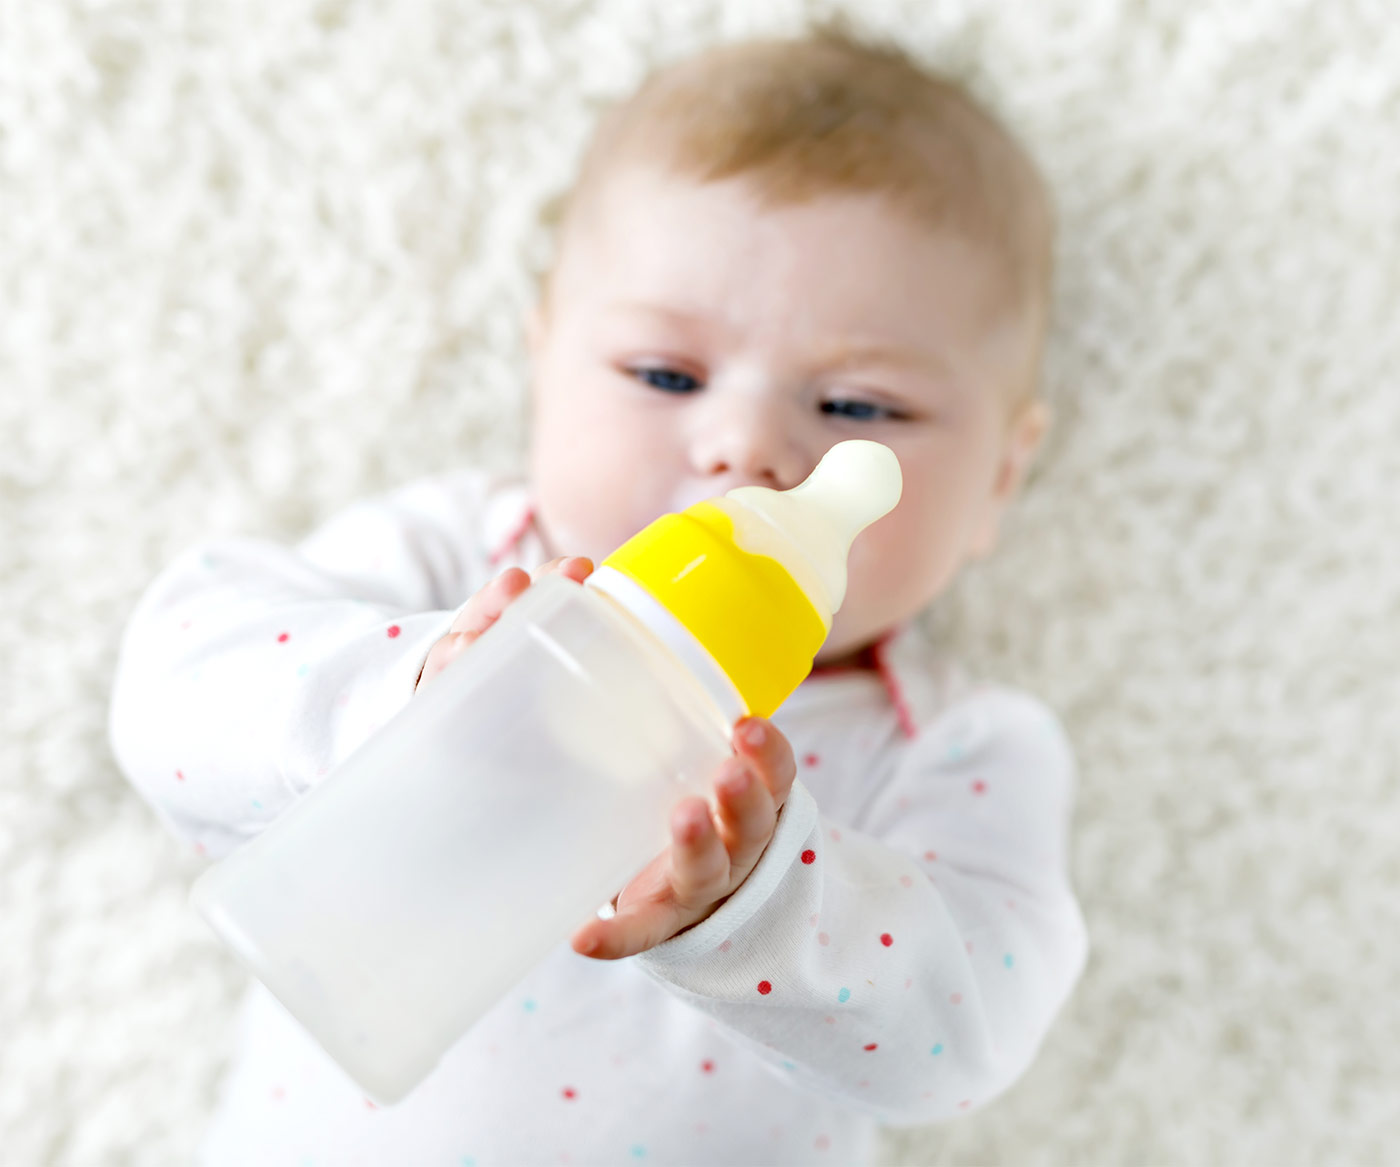 Baby goes on a bottle strike